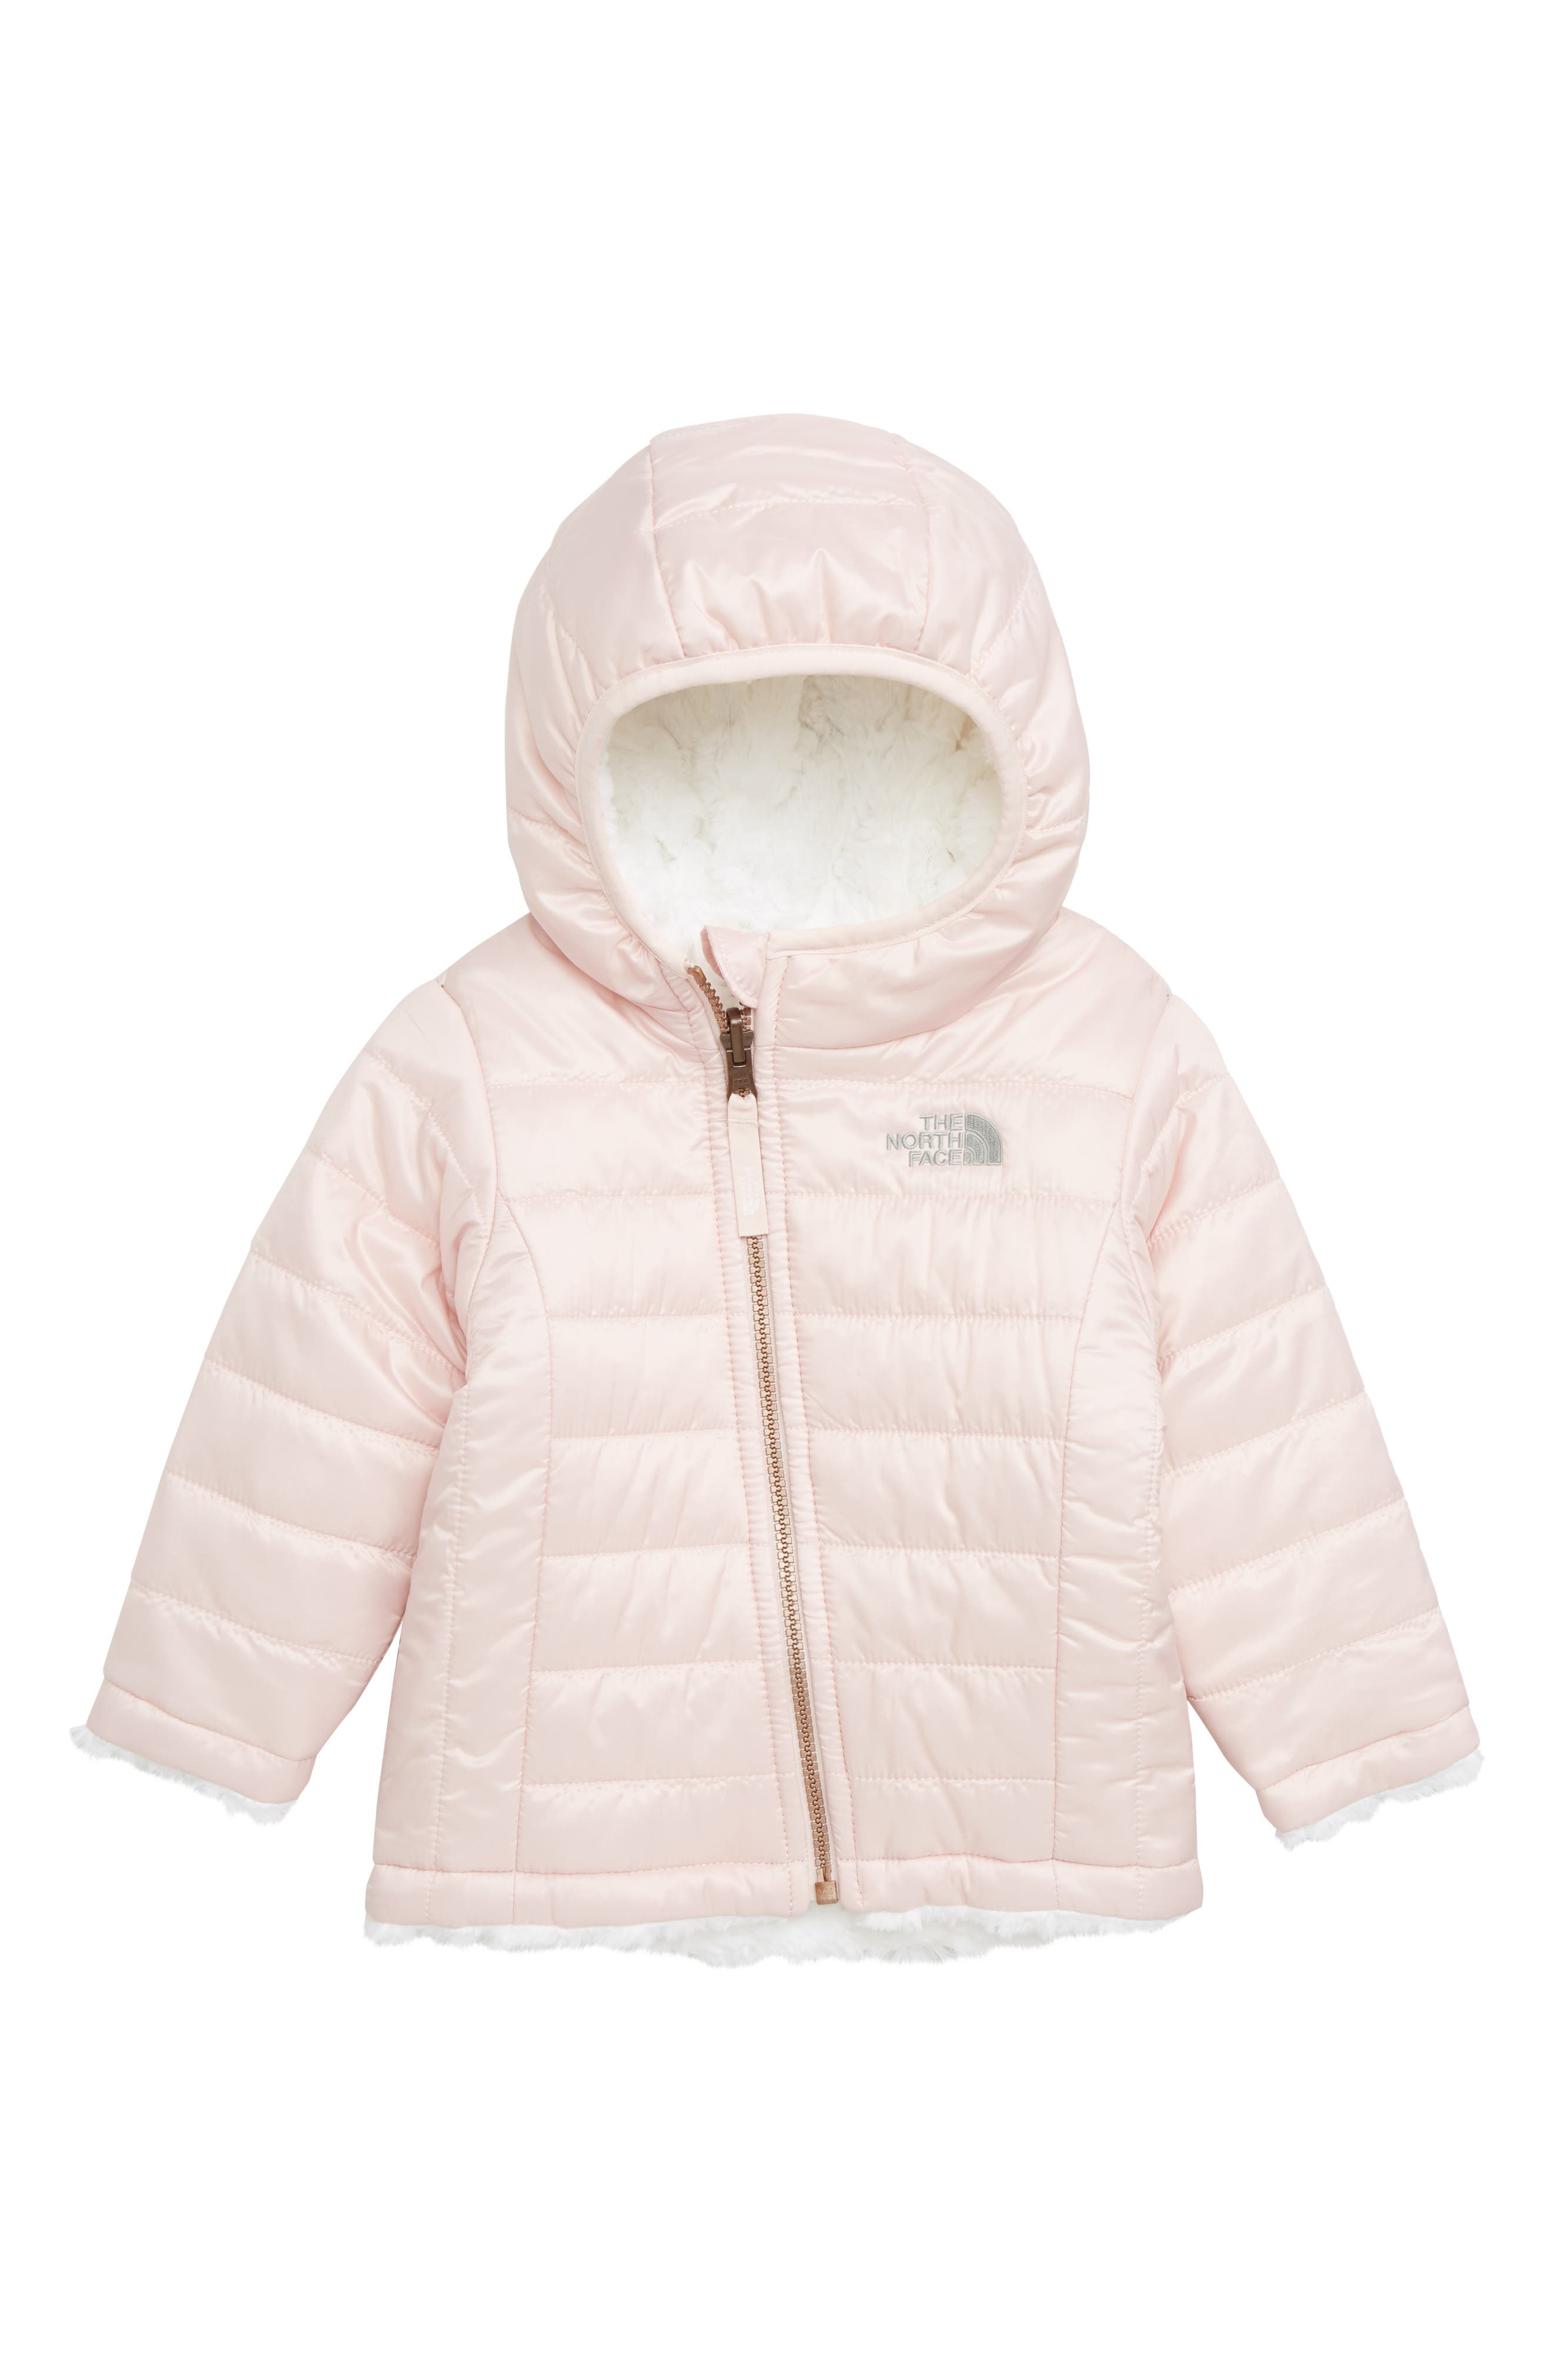 THE NORTH FACE Mossbud Swirl Reversible Water Repellent Jacket, Main, color, PURDY PINK